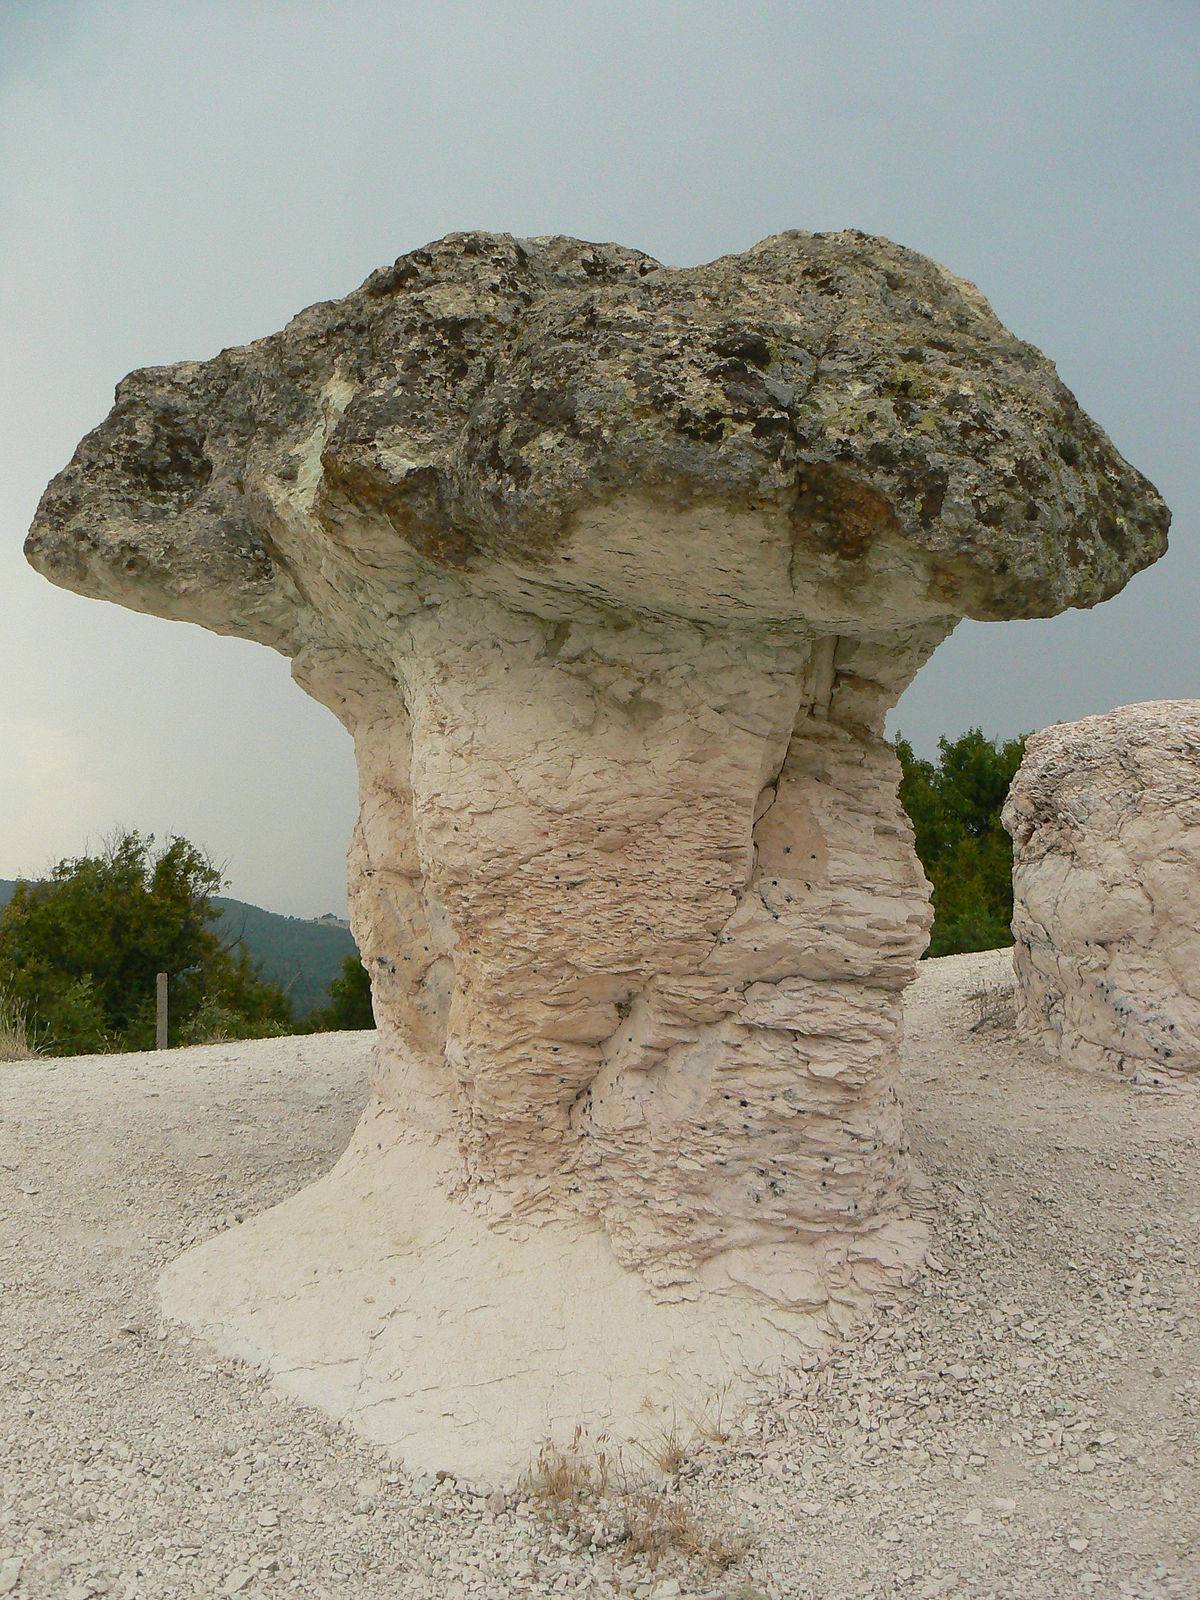 The Stone Mushrooms Wikipedia